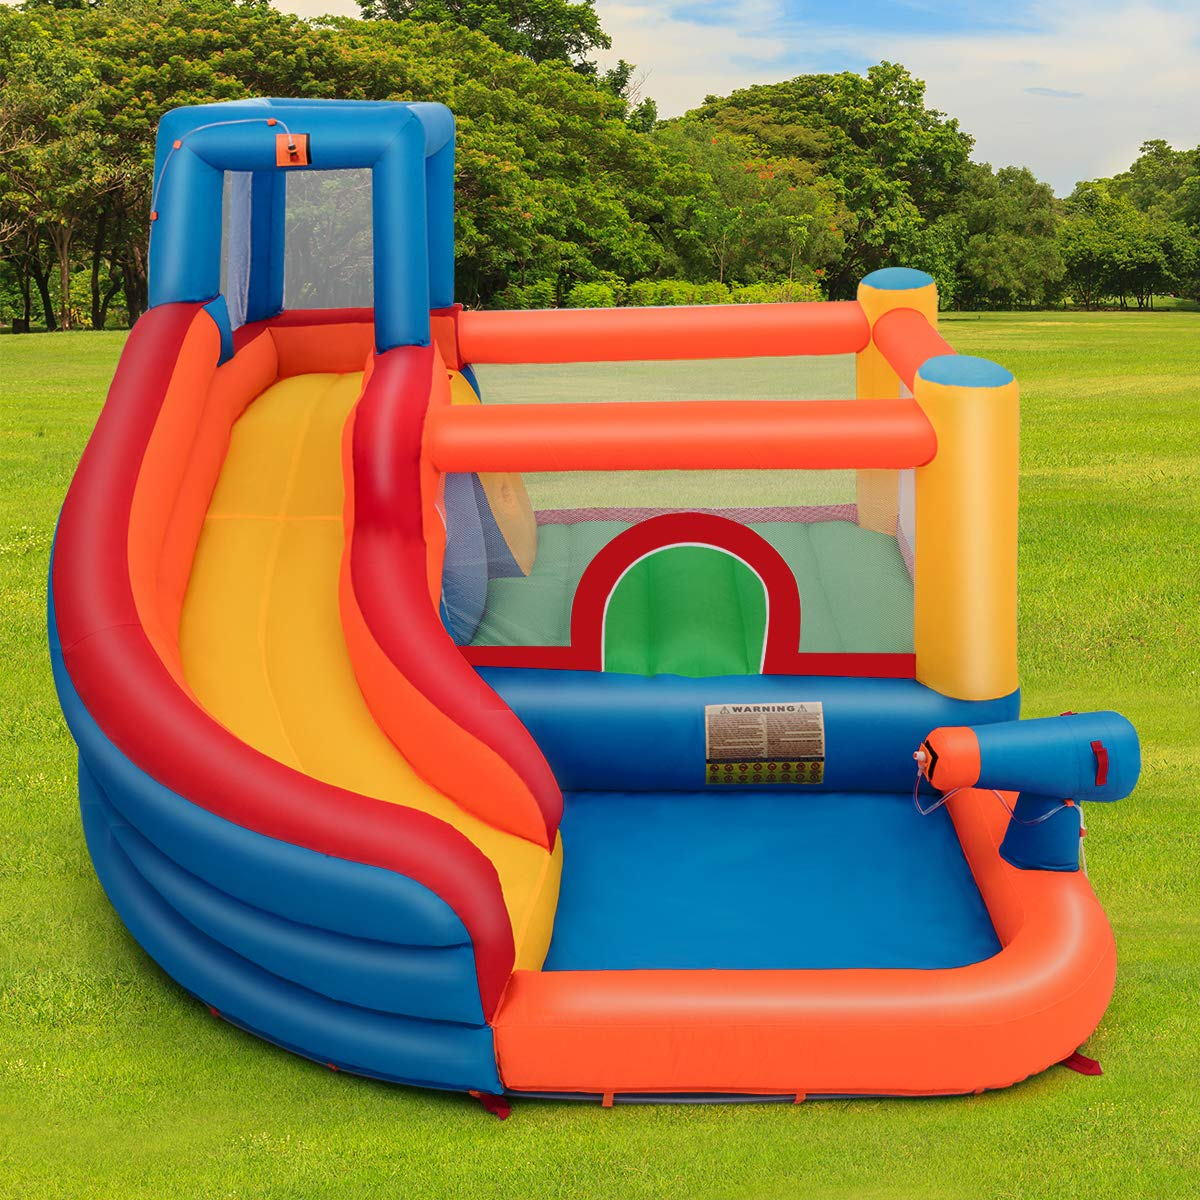 Costzon Inflatable Bounce House, 5-in-1 Water Slide w/ Climbing Wall, Jumping Area, Splash Pool, Water Cannon, Including Oxford Carry Bag, Repairing Kit, Stakes, Hose, Without Blower by Costzon (Image #8)